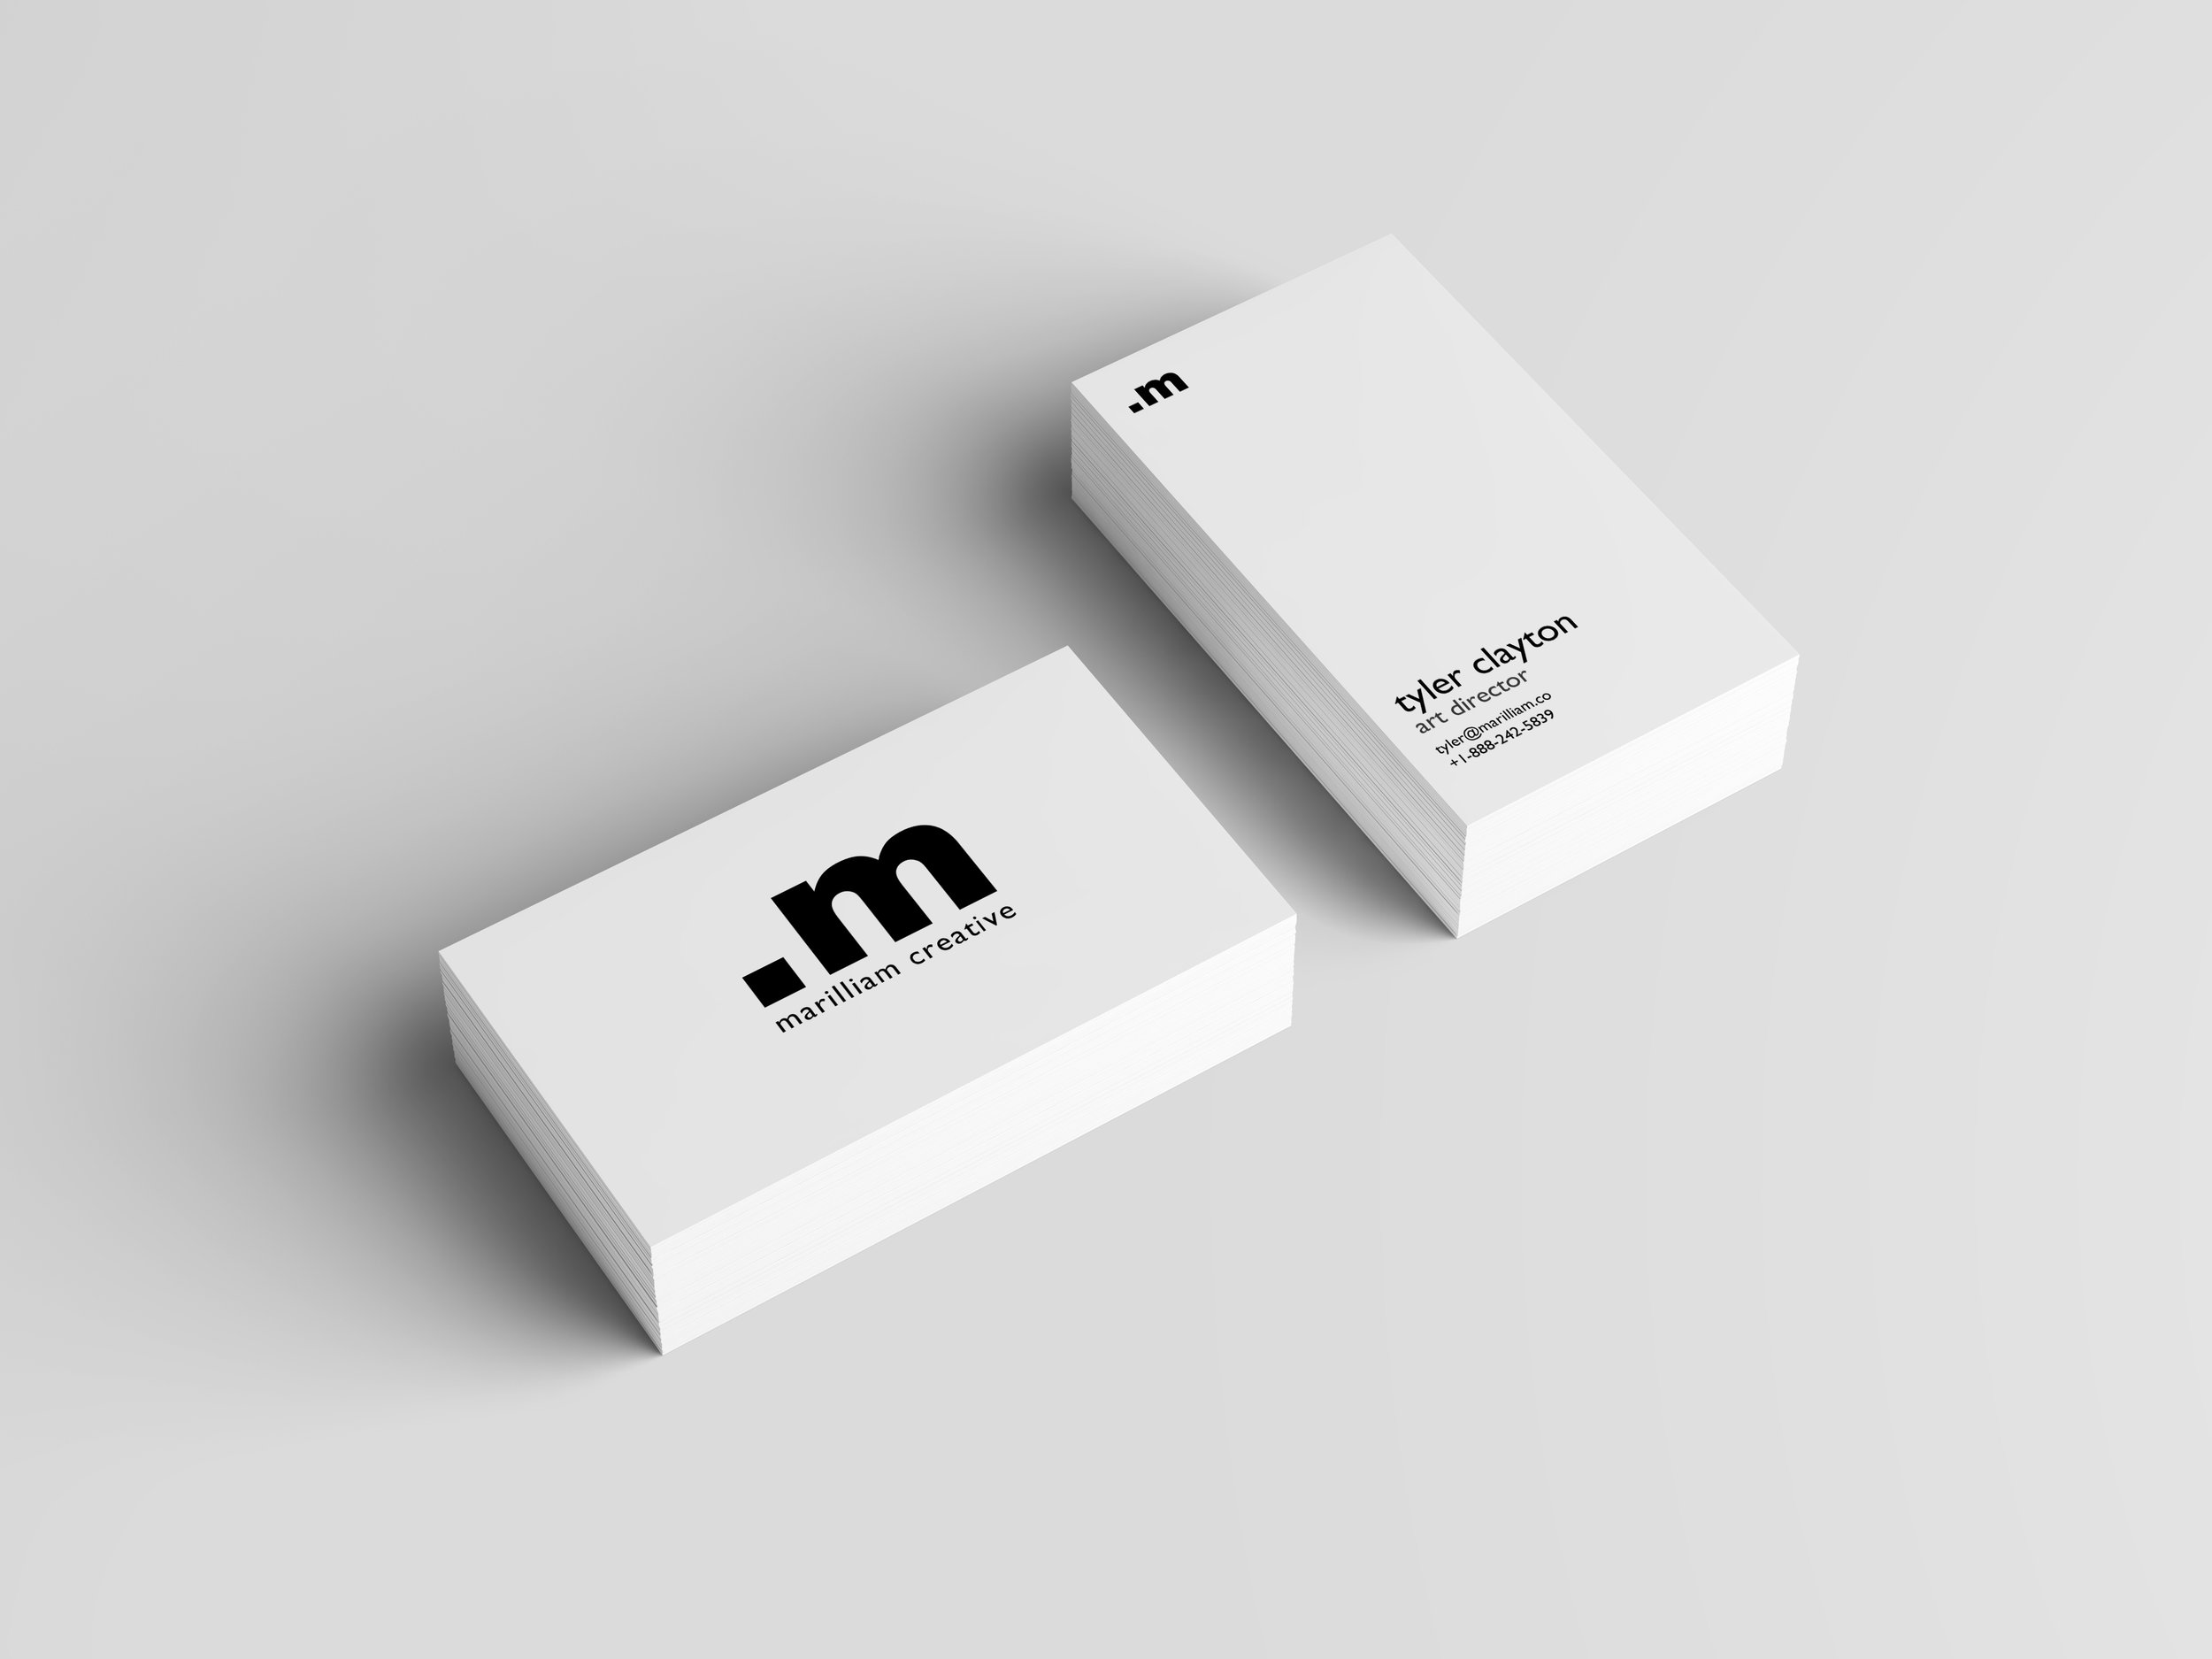 Marilliam Creative - Business Card Design.jpg